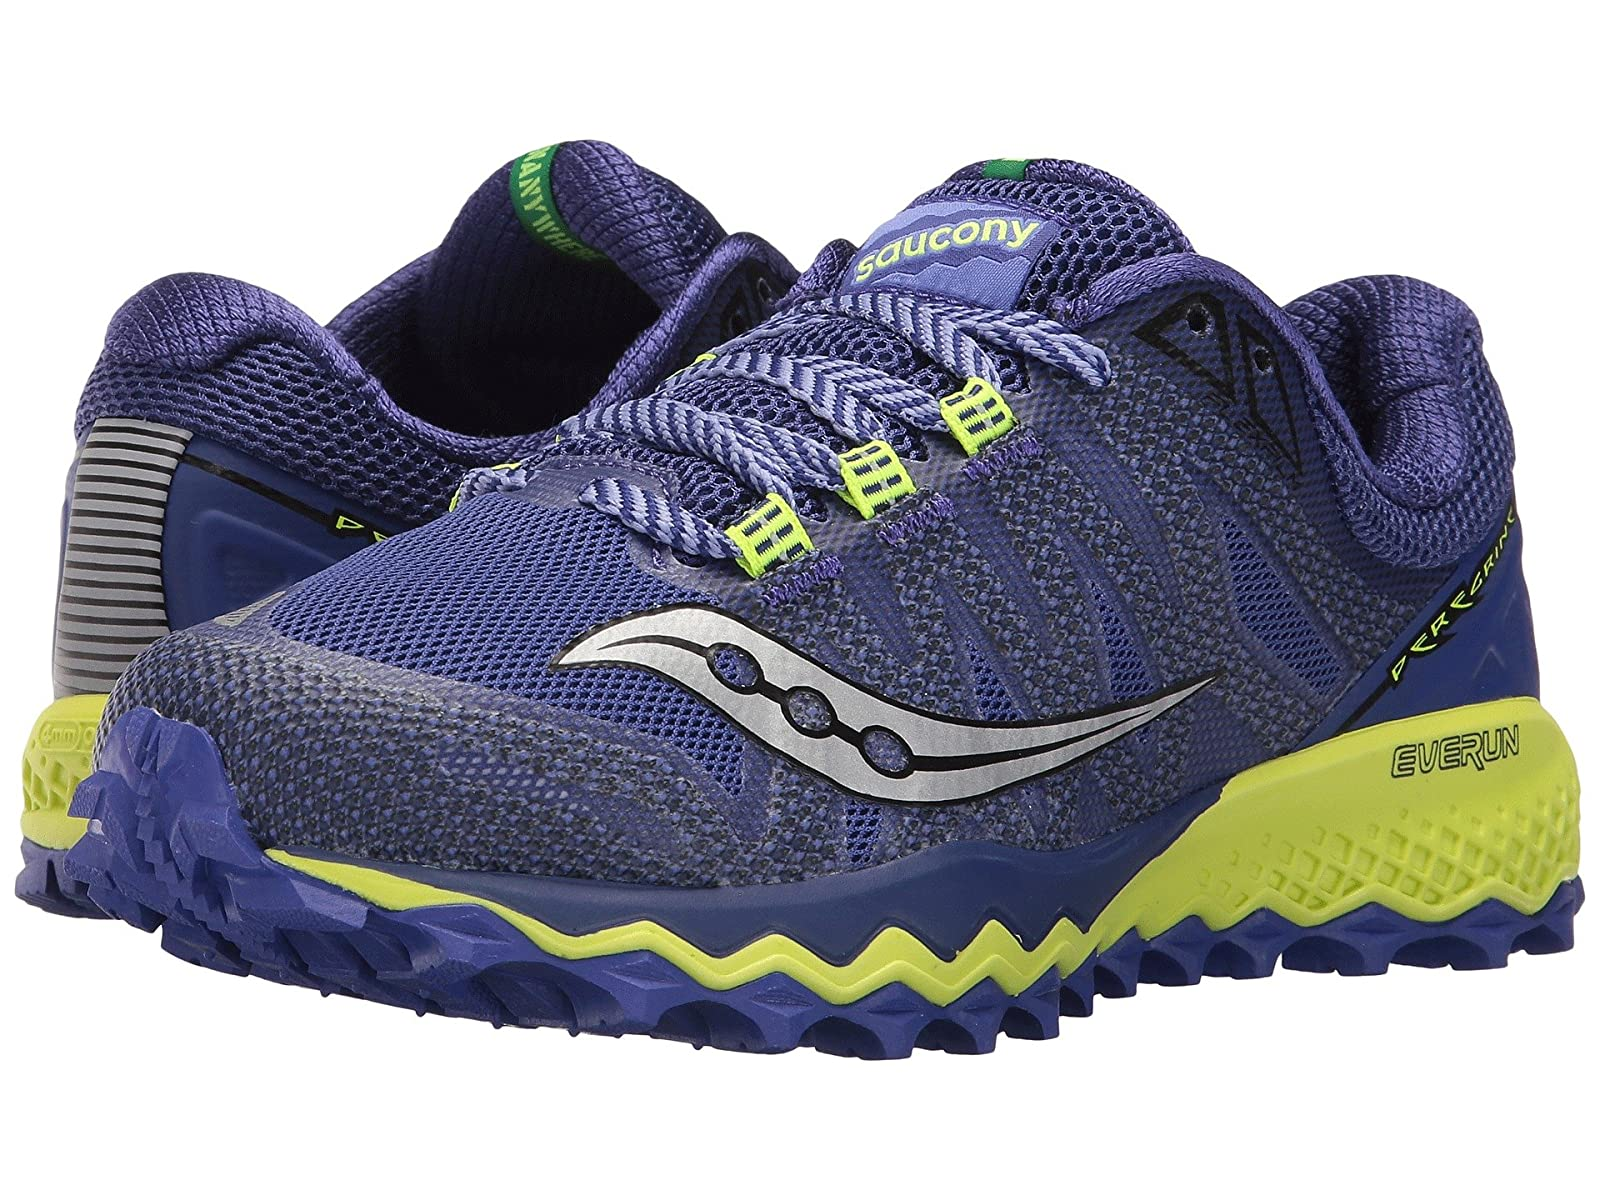 Saucony Peregrine 7Atmospheric grades have affordable shoes